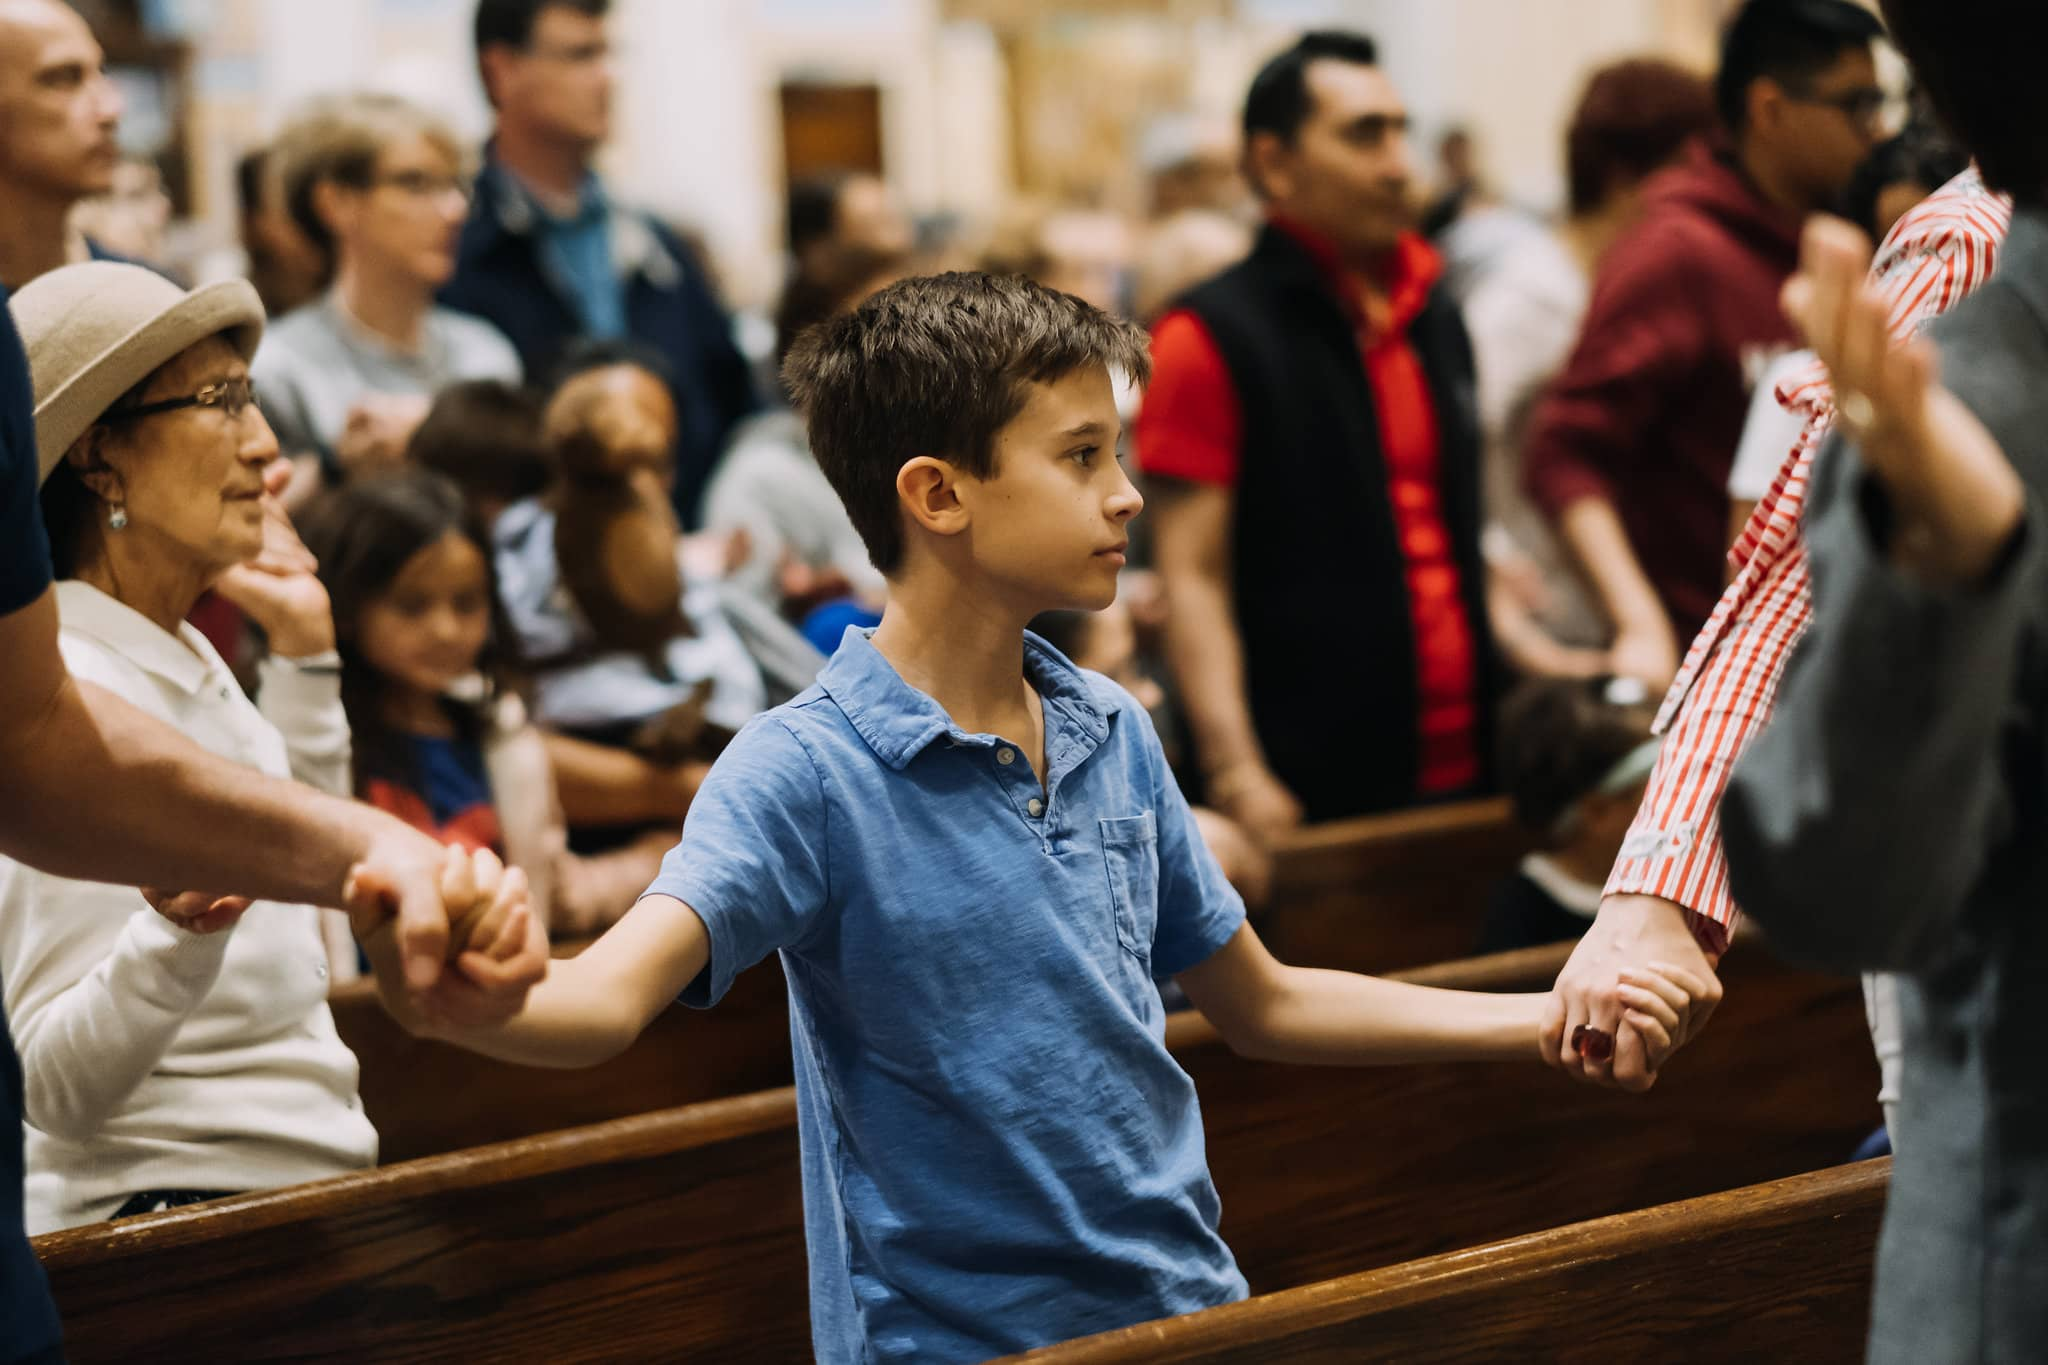 youth-kids-group-our-father--hands-hold-mass-st-francis-de-sales-church-new-york-city.jpg